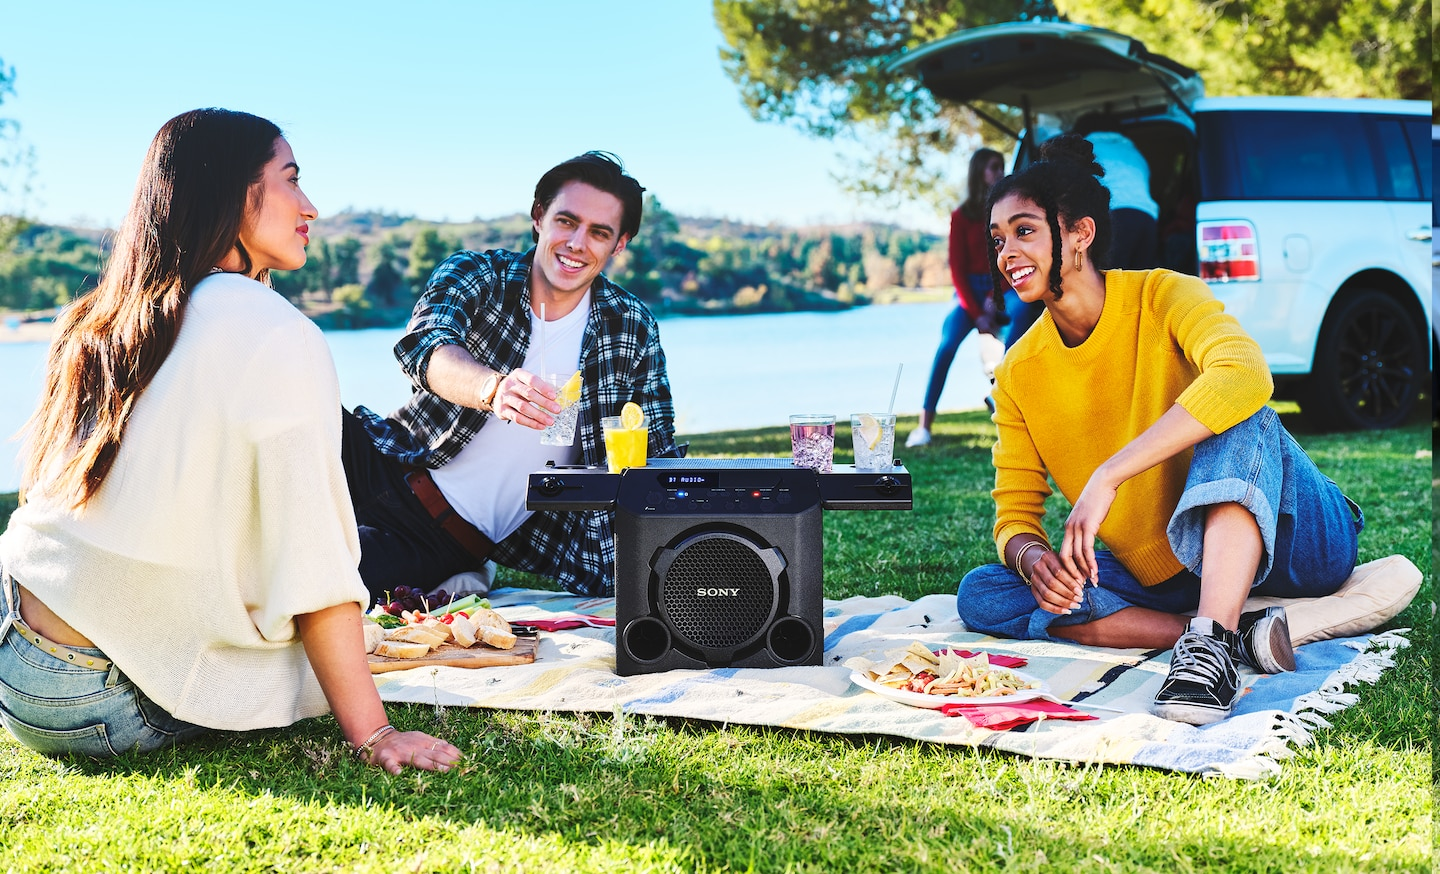 Lifestyle image of GTK-PG10 in an outdoor environment